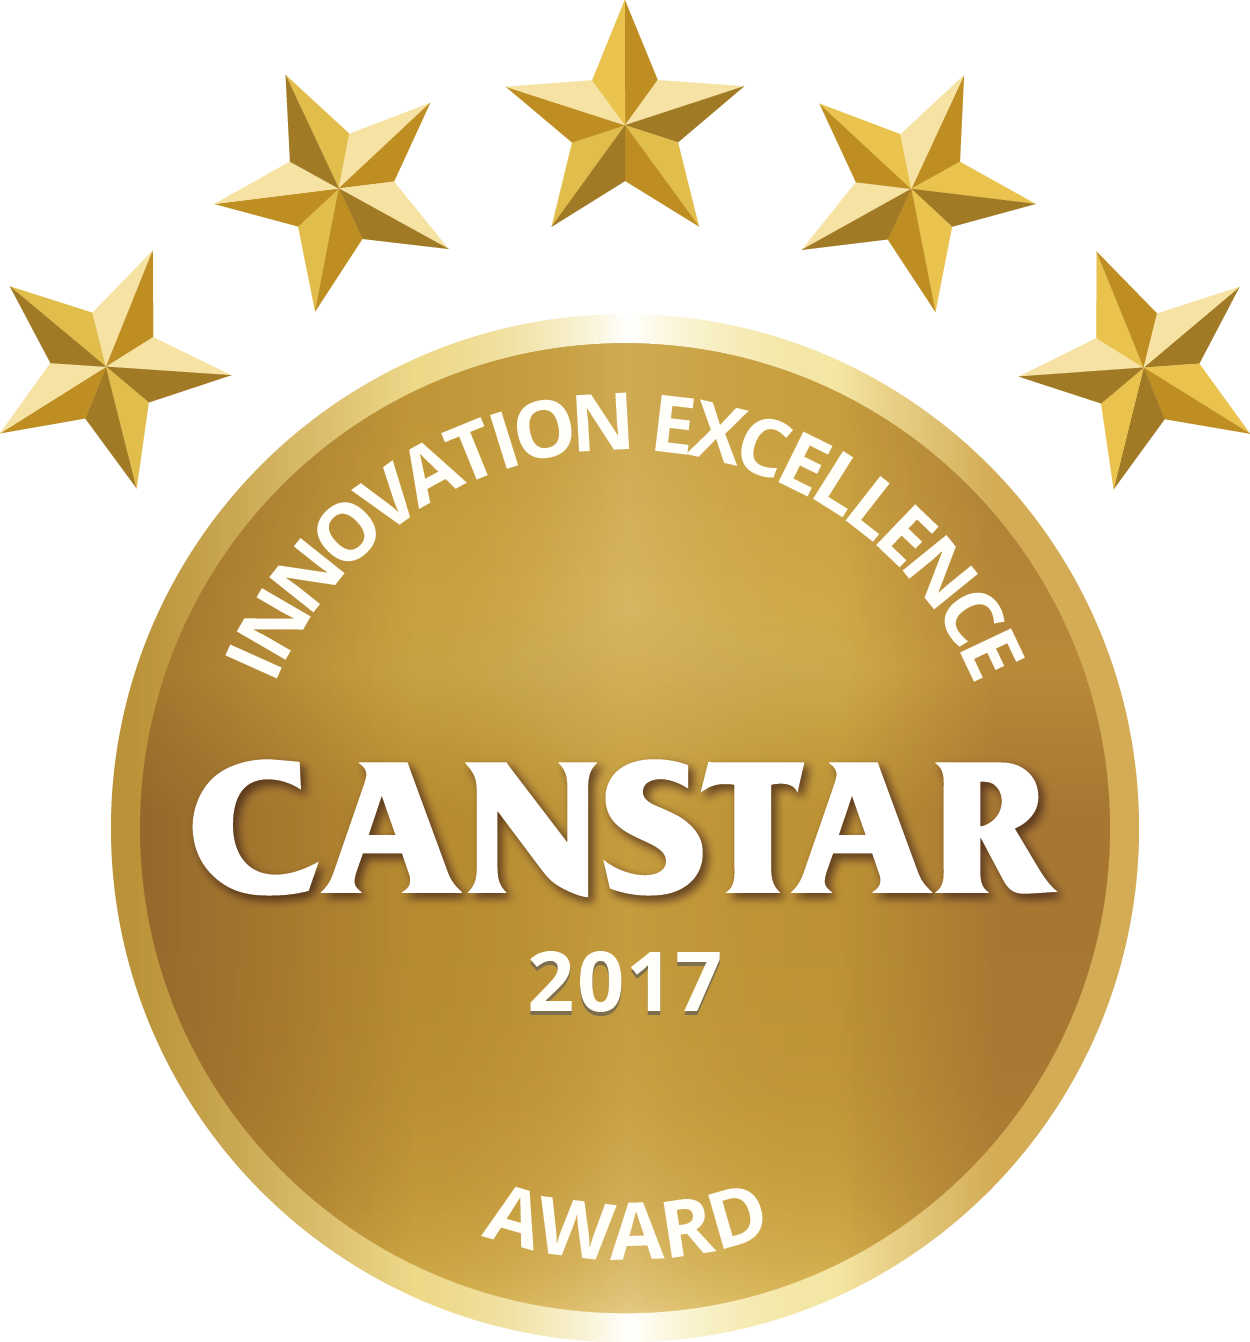 CANSTAR 2017 - Innovation Excellence Award